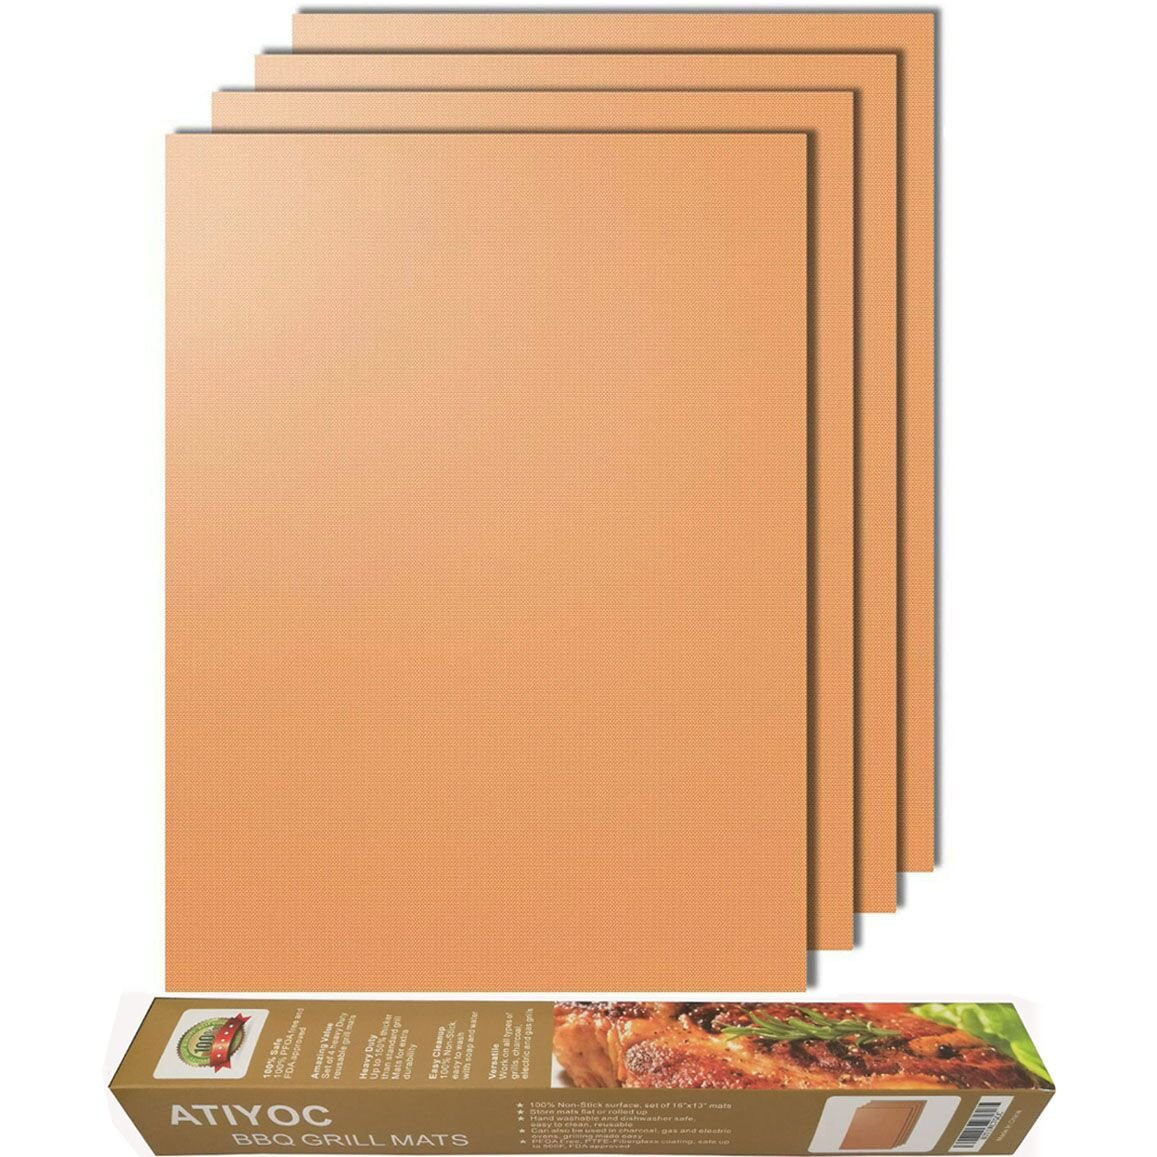 Atiyoc Copper Grill Mat, Set of 4 Non-stick and Heat Resistant Baking Mats for Charcoal, Electric and Gas Grill